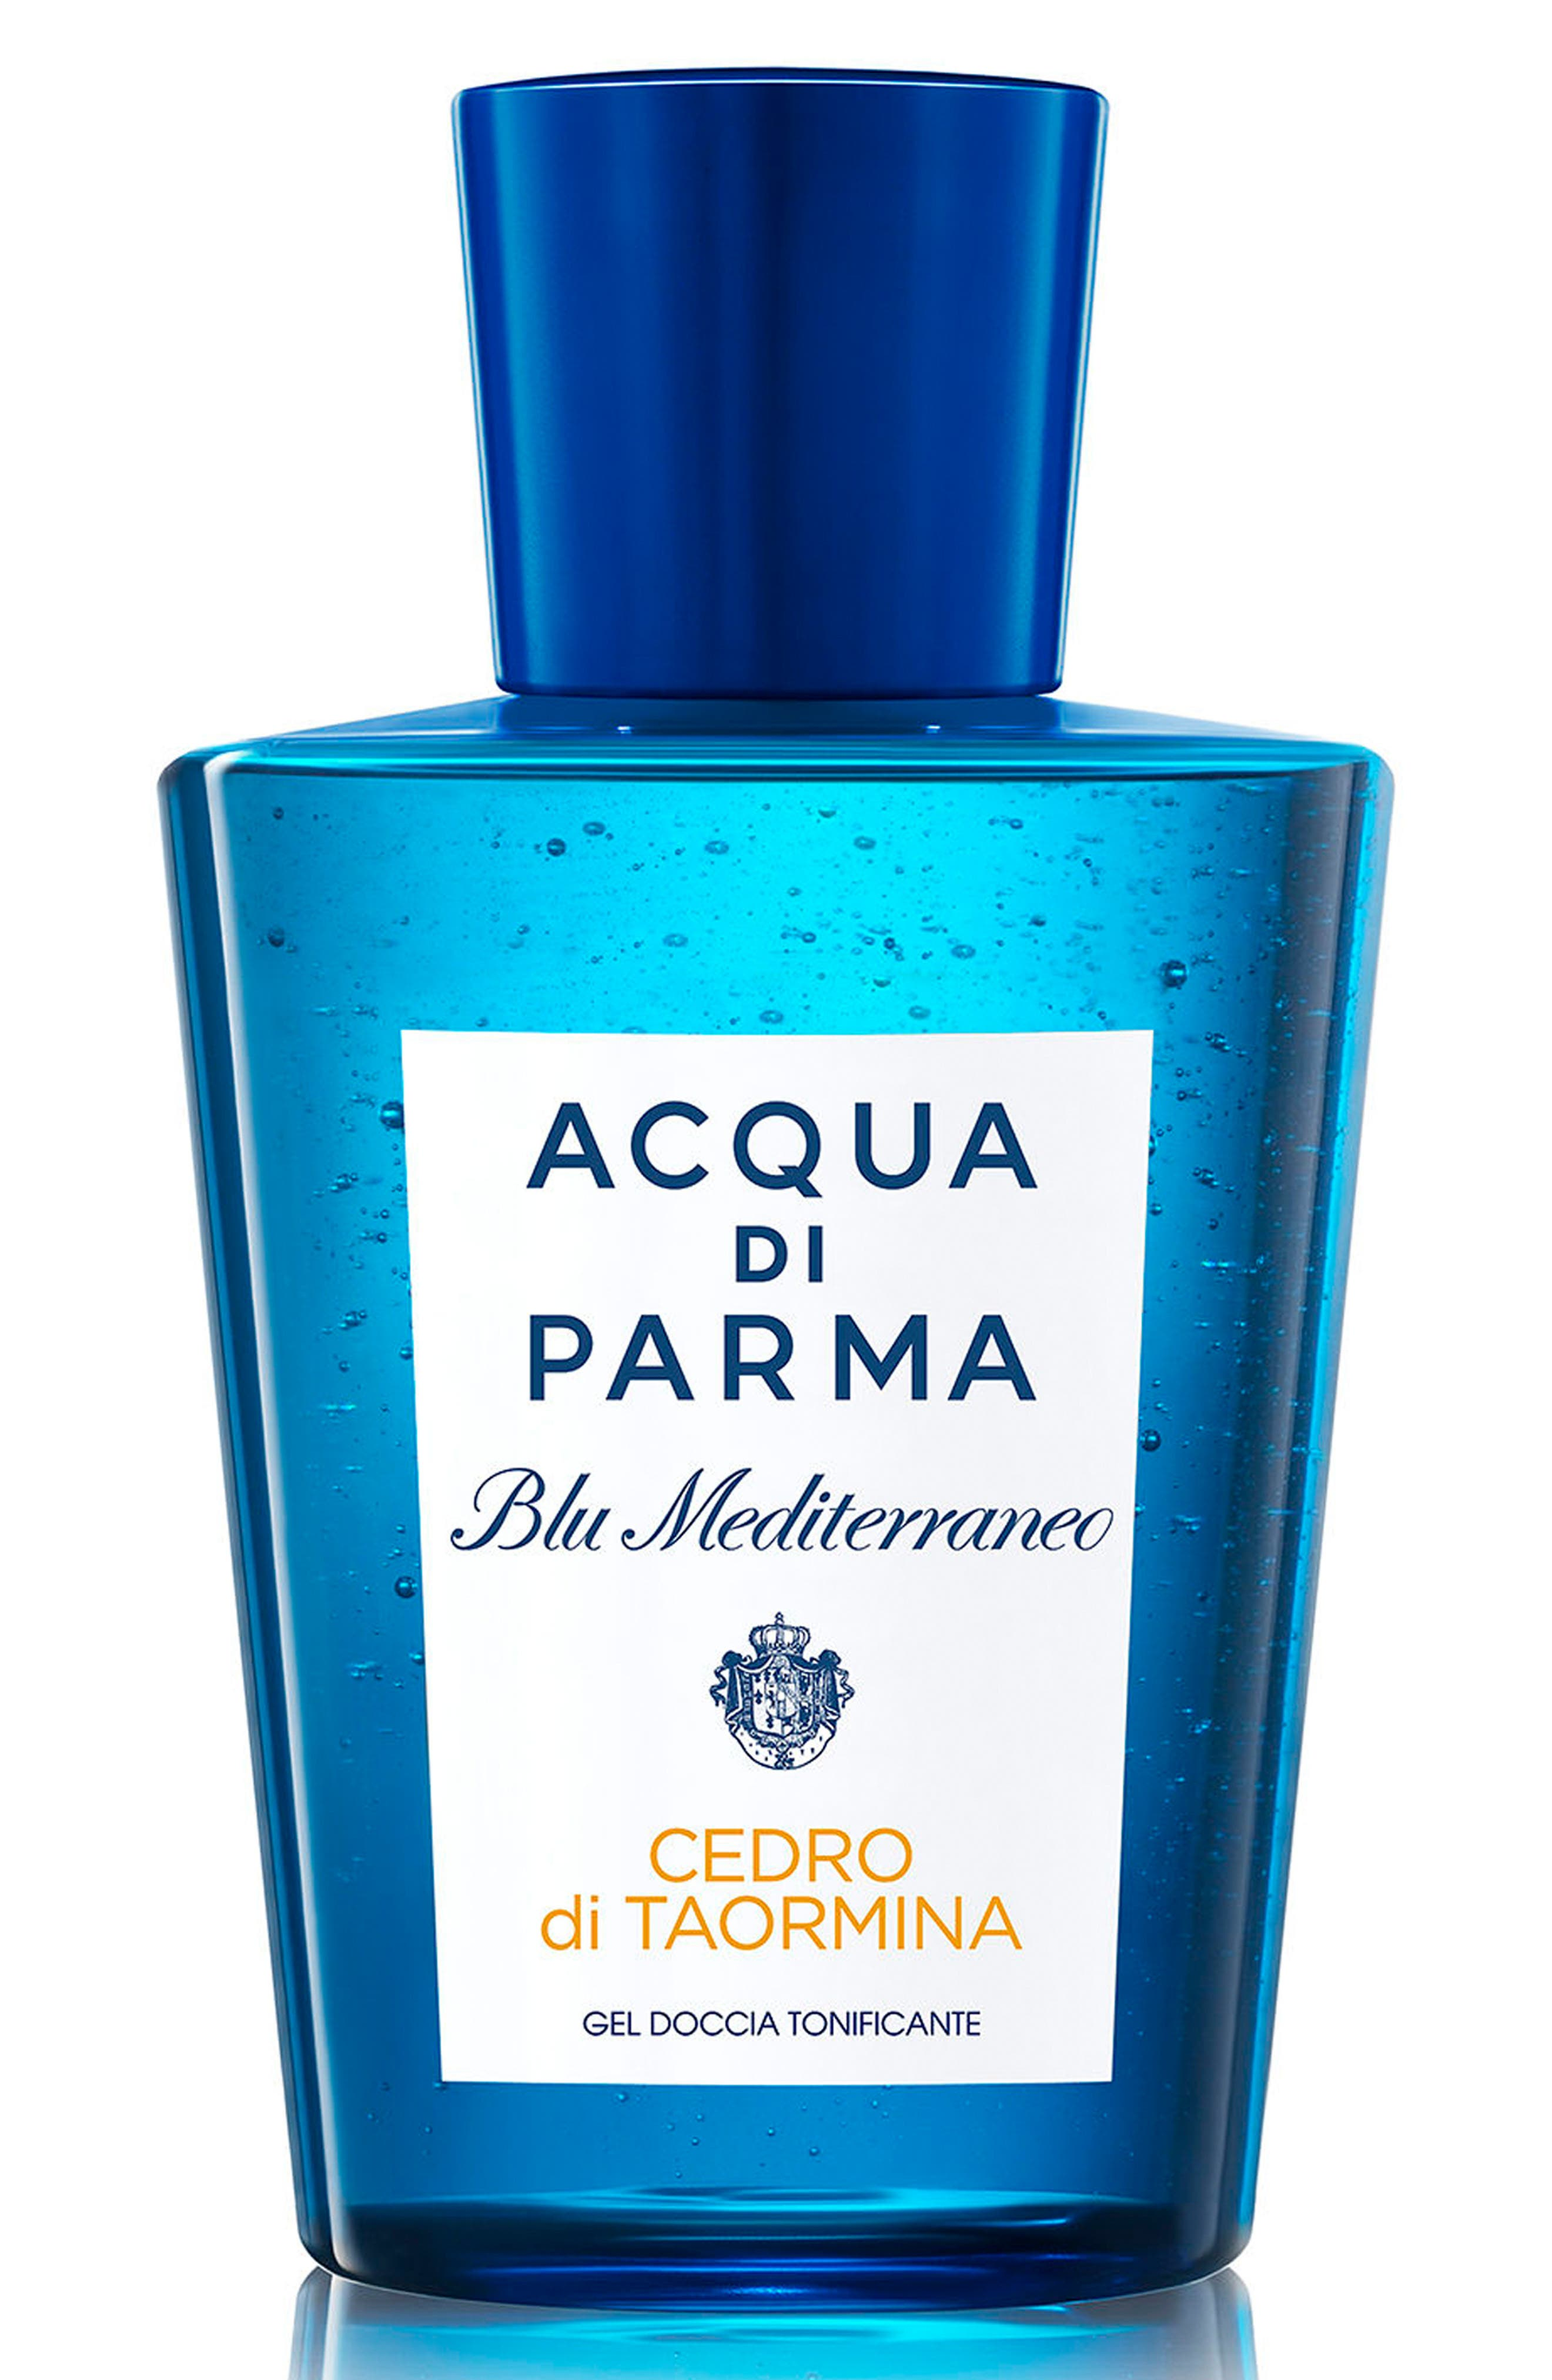 Acqua di Parma 'Blu Mediterraneo Cedro di Taormina' Invigorating Shower Gel